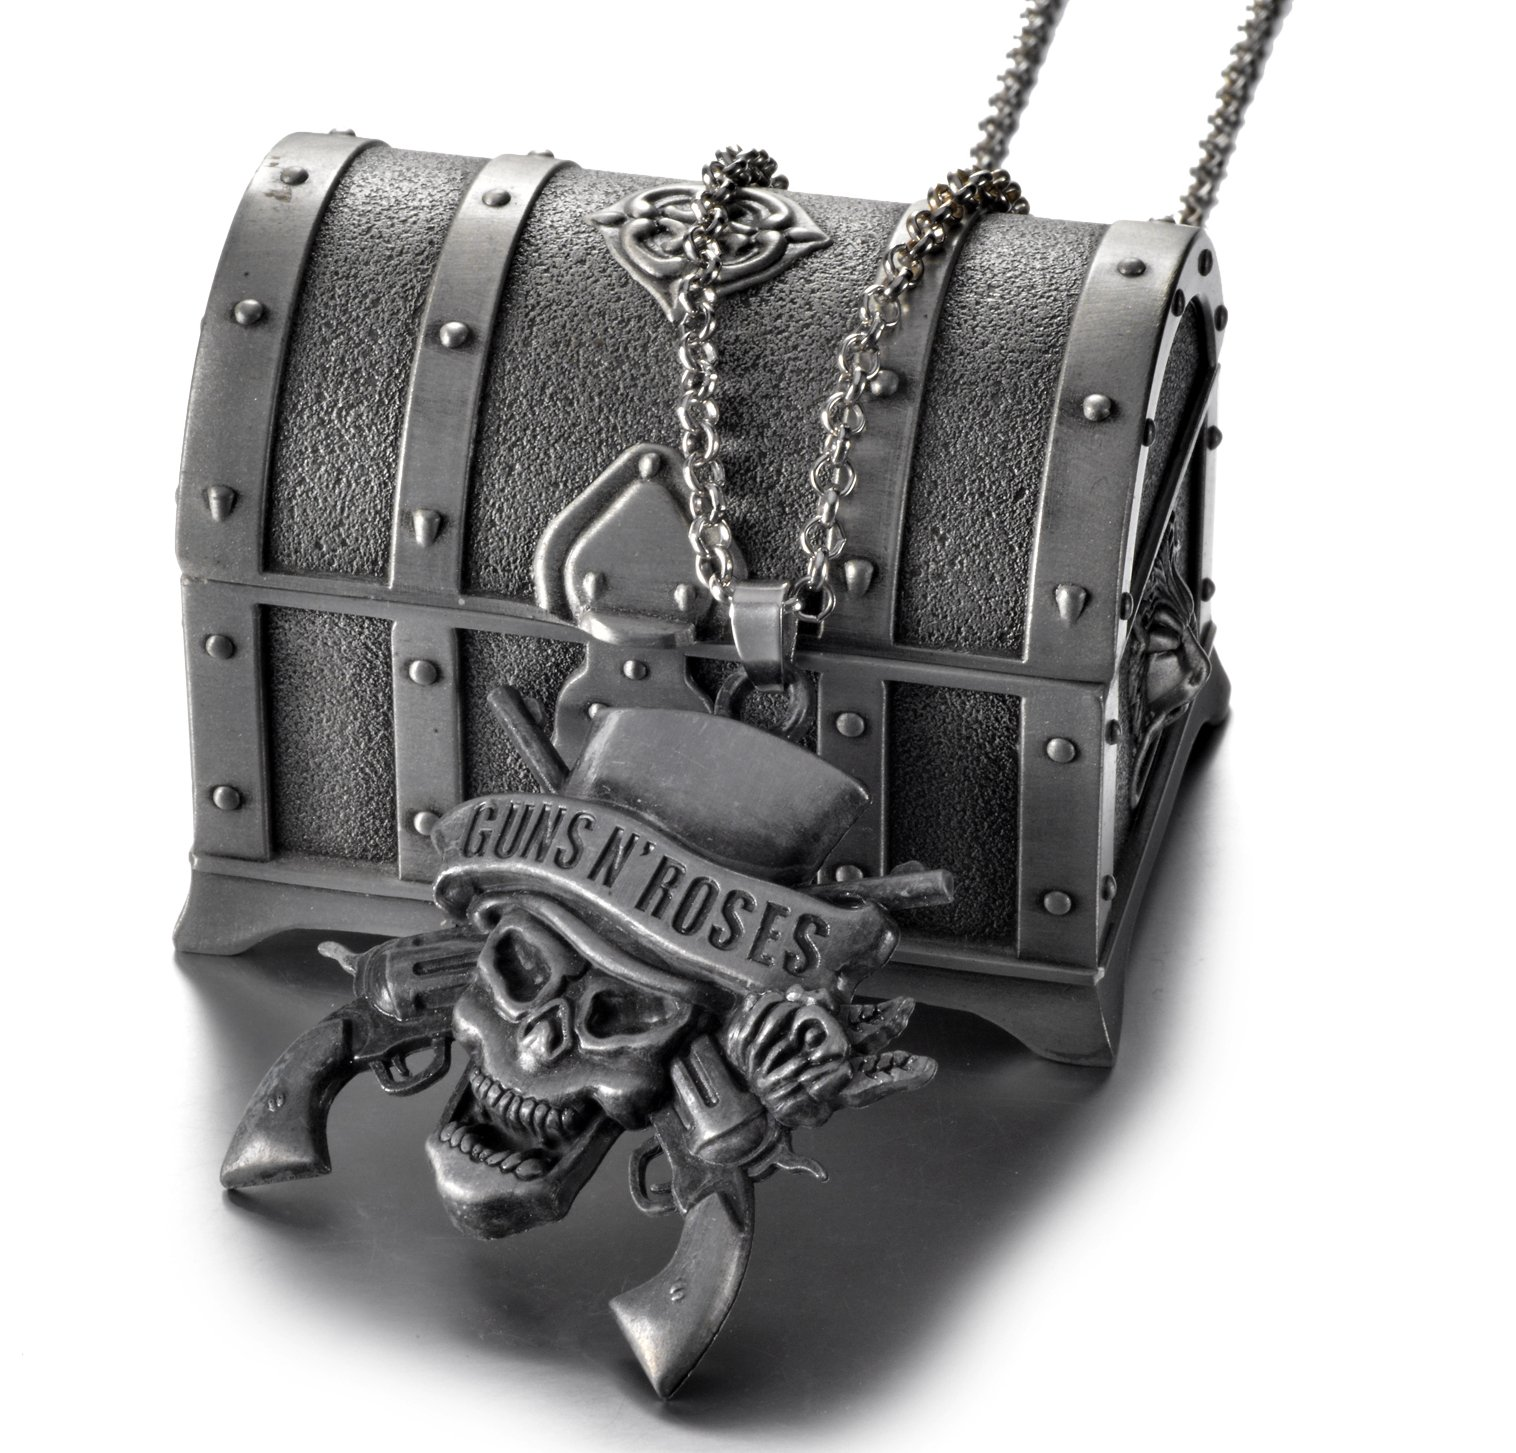 REINDEAR American Hard Rock Band Guns N' Roses Logo Metal Necklace US Seller (Necklace w/ Jewelry Box)